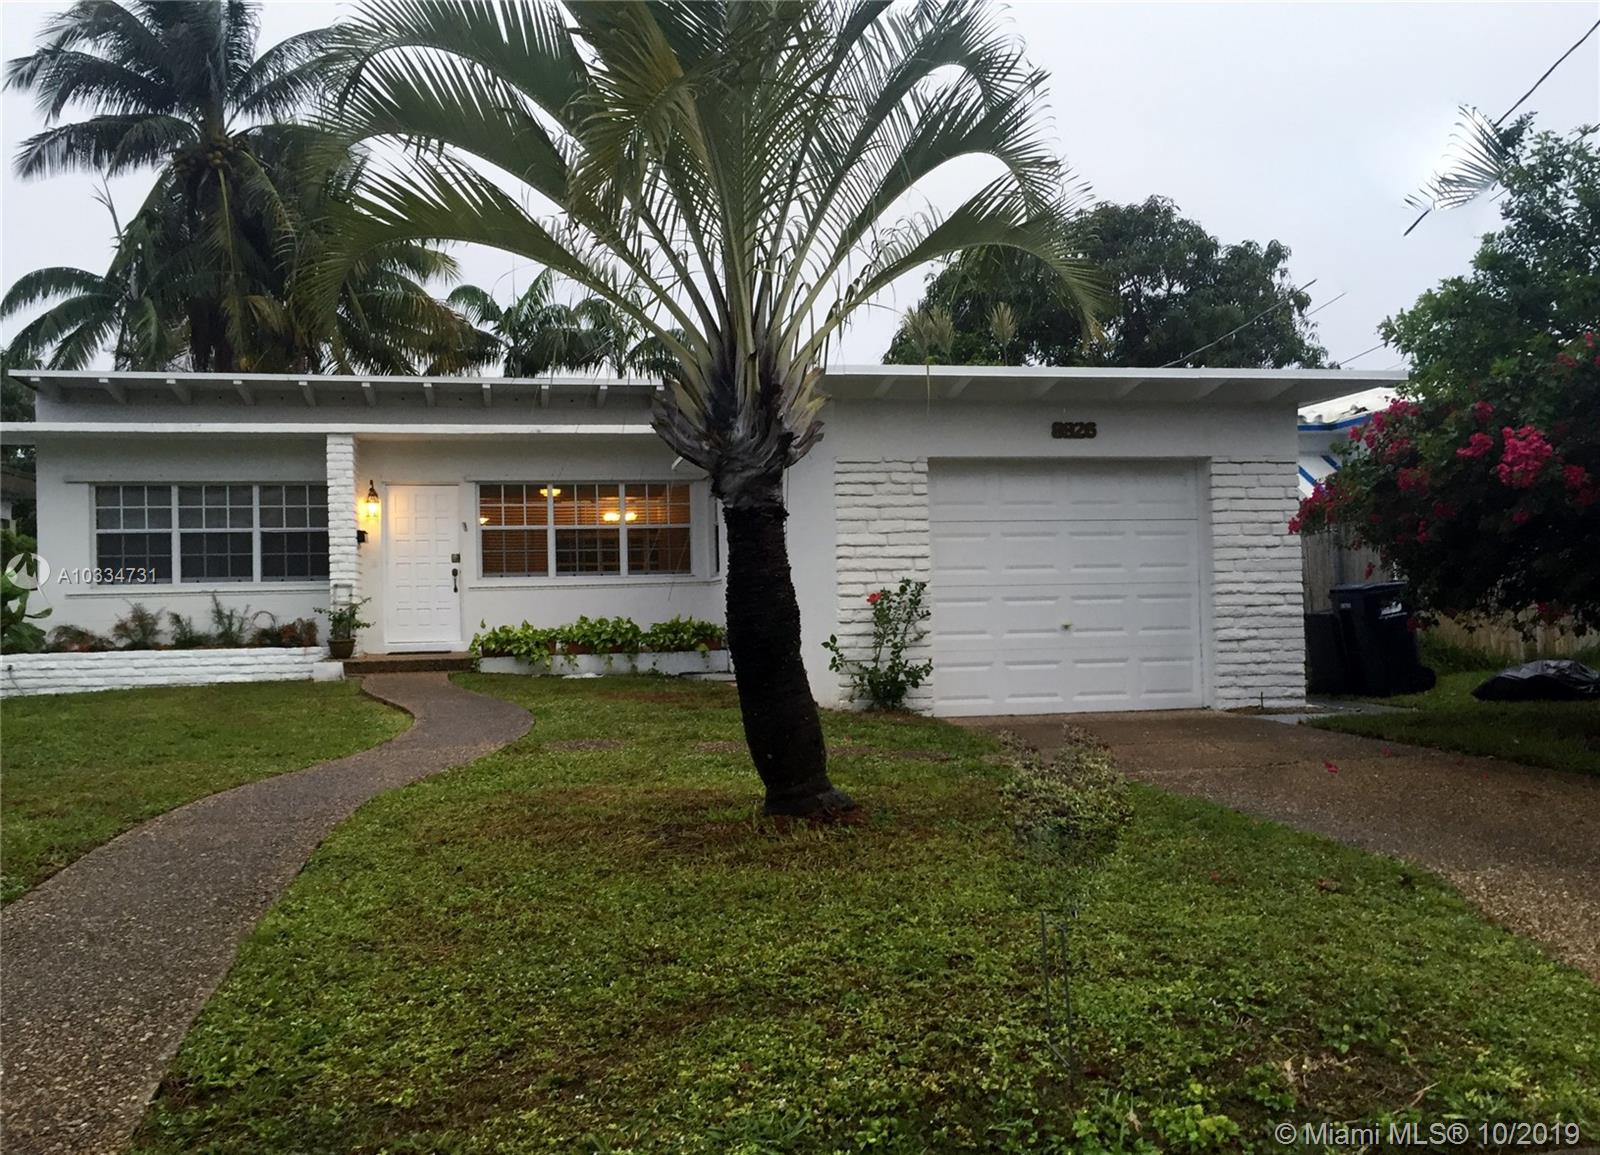 8926  Abbott Ave  For Sale A10334731, FL